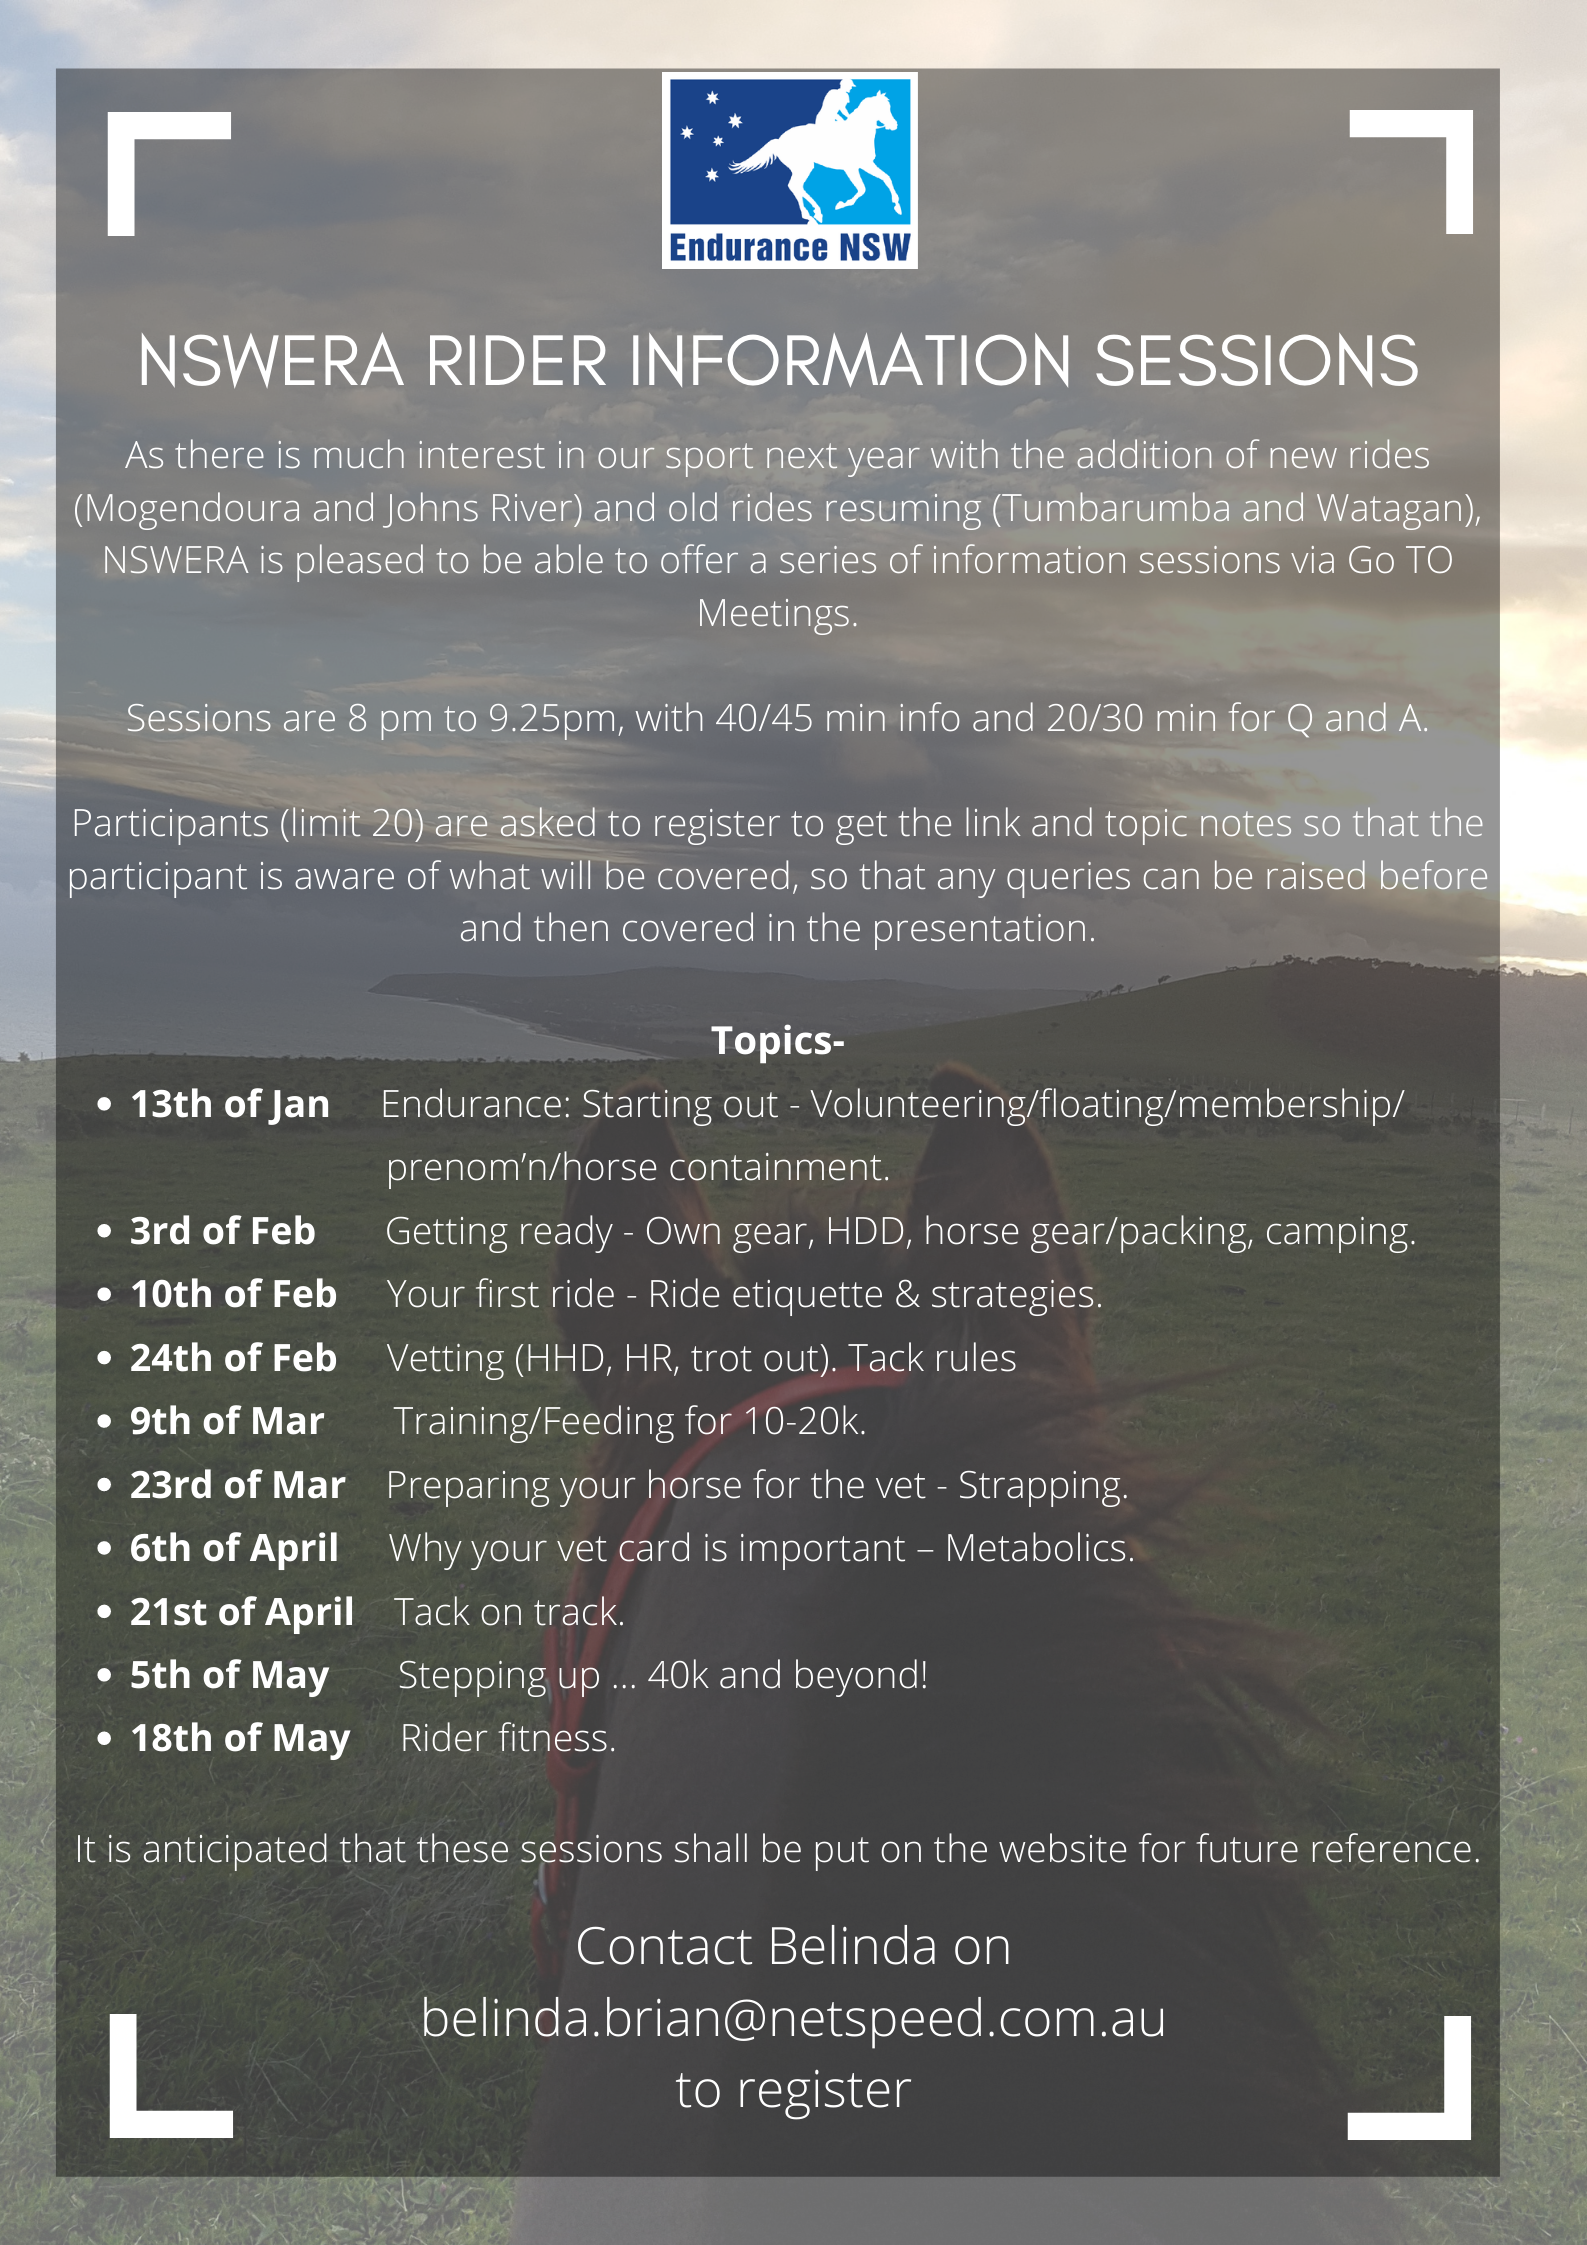 NSWERA Rider Information Sessions